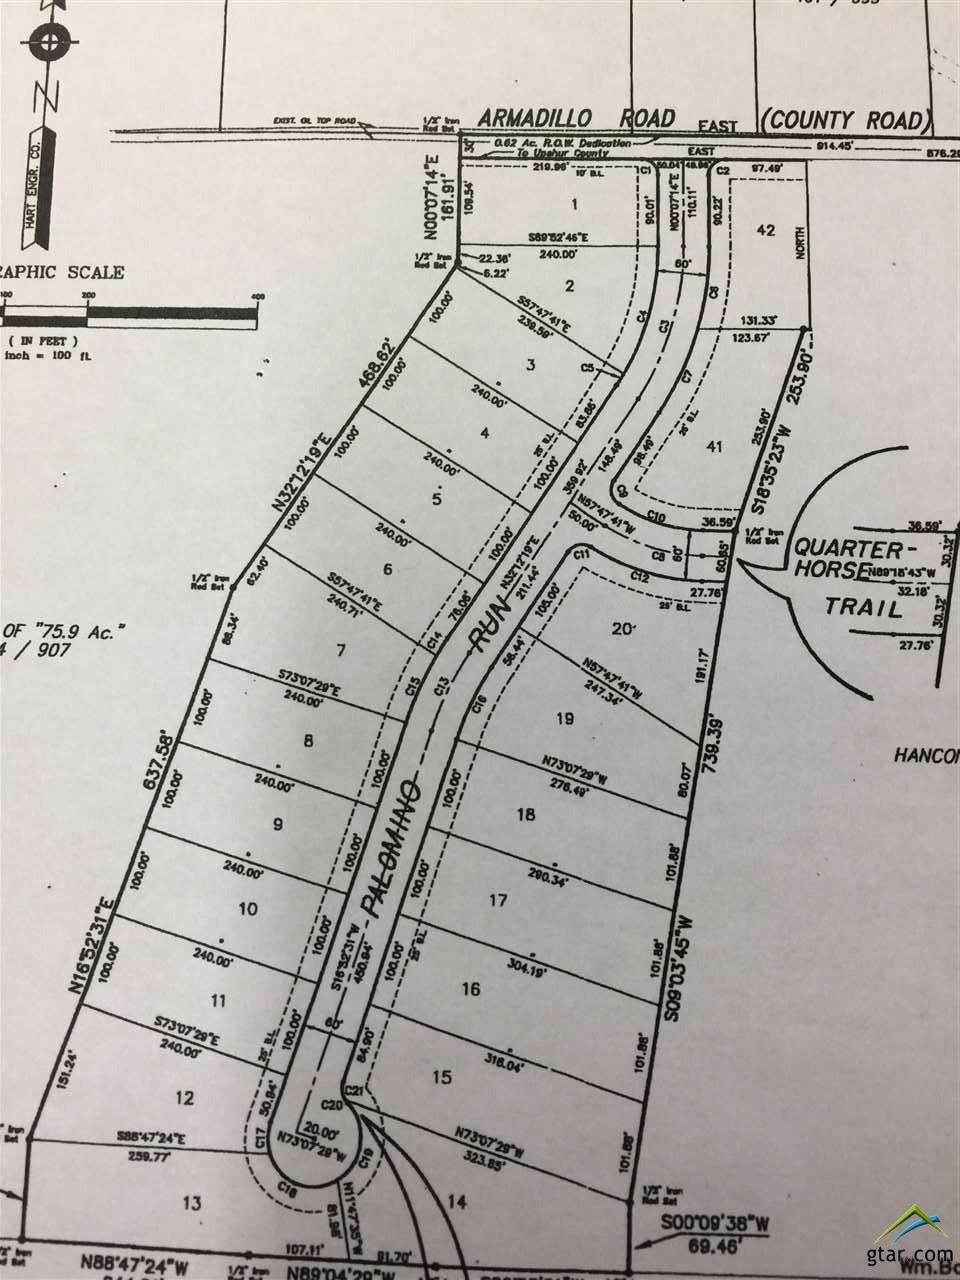 TBD Armadillo Road - Lot 15 - Meadow Springs Subdivision - Photo 1